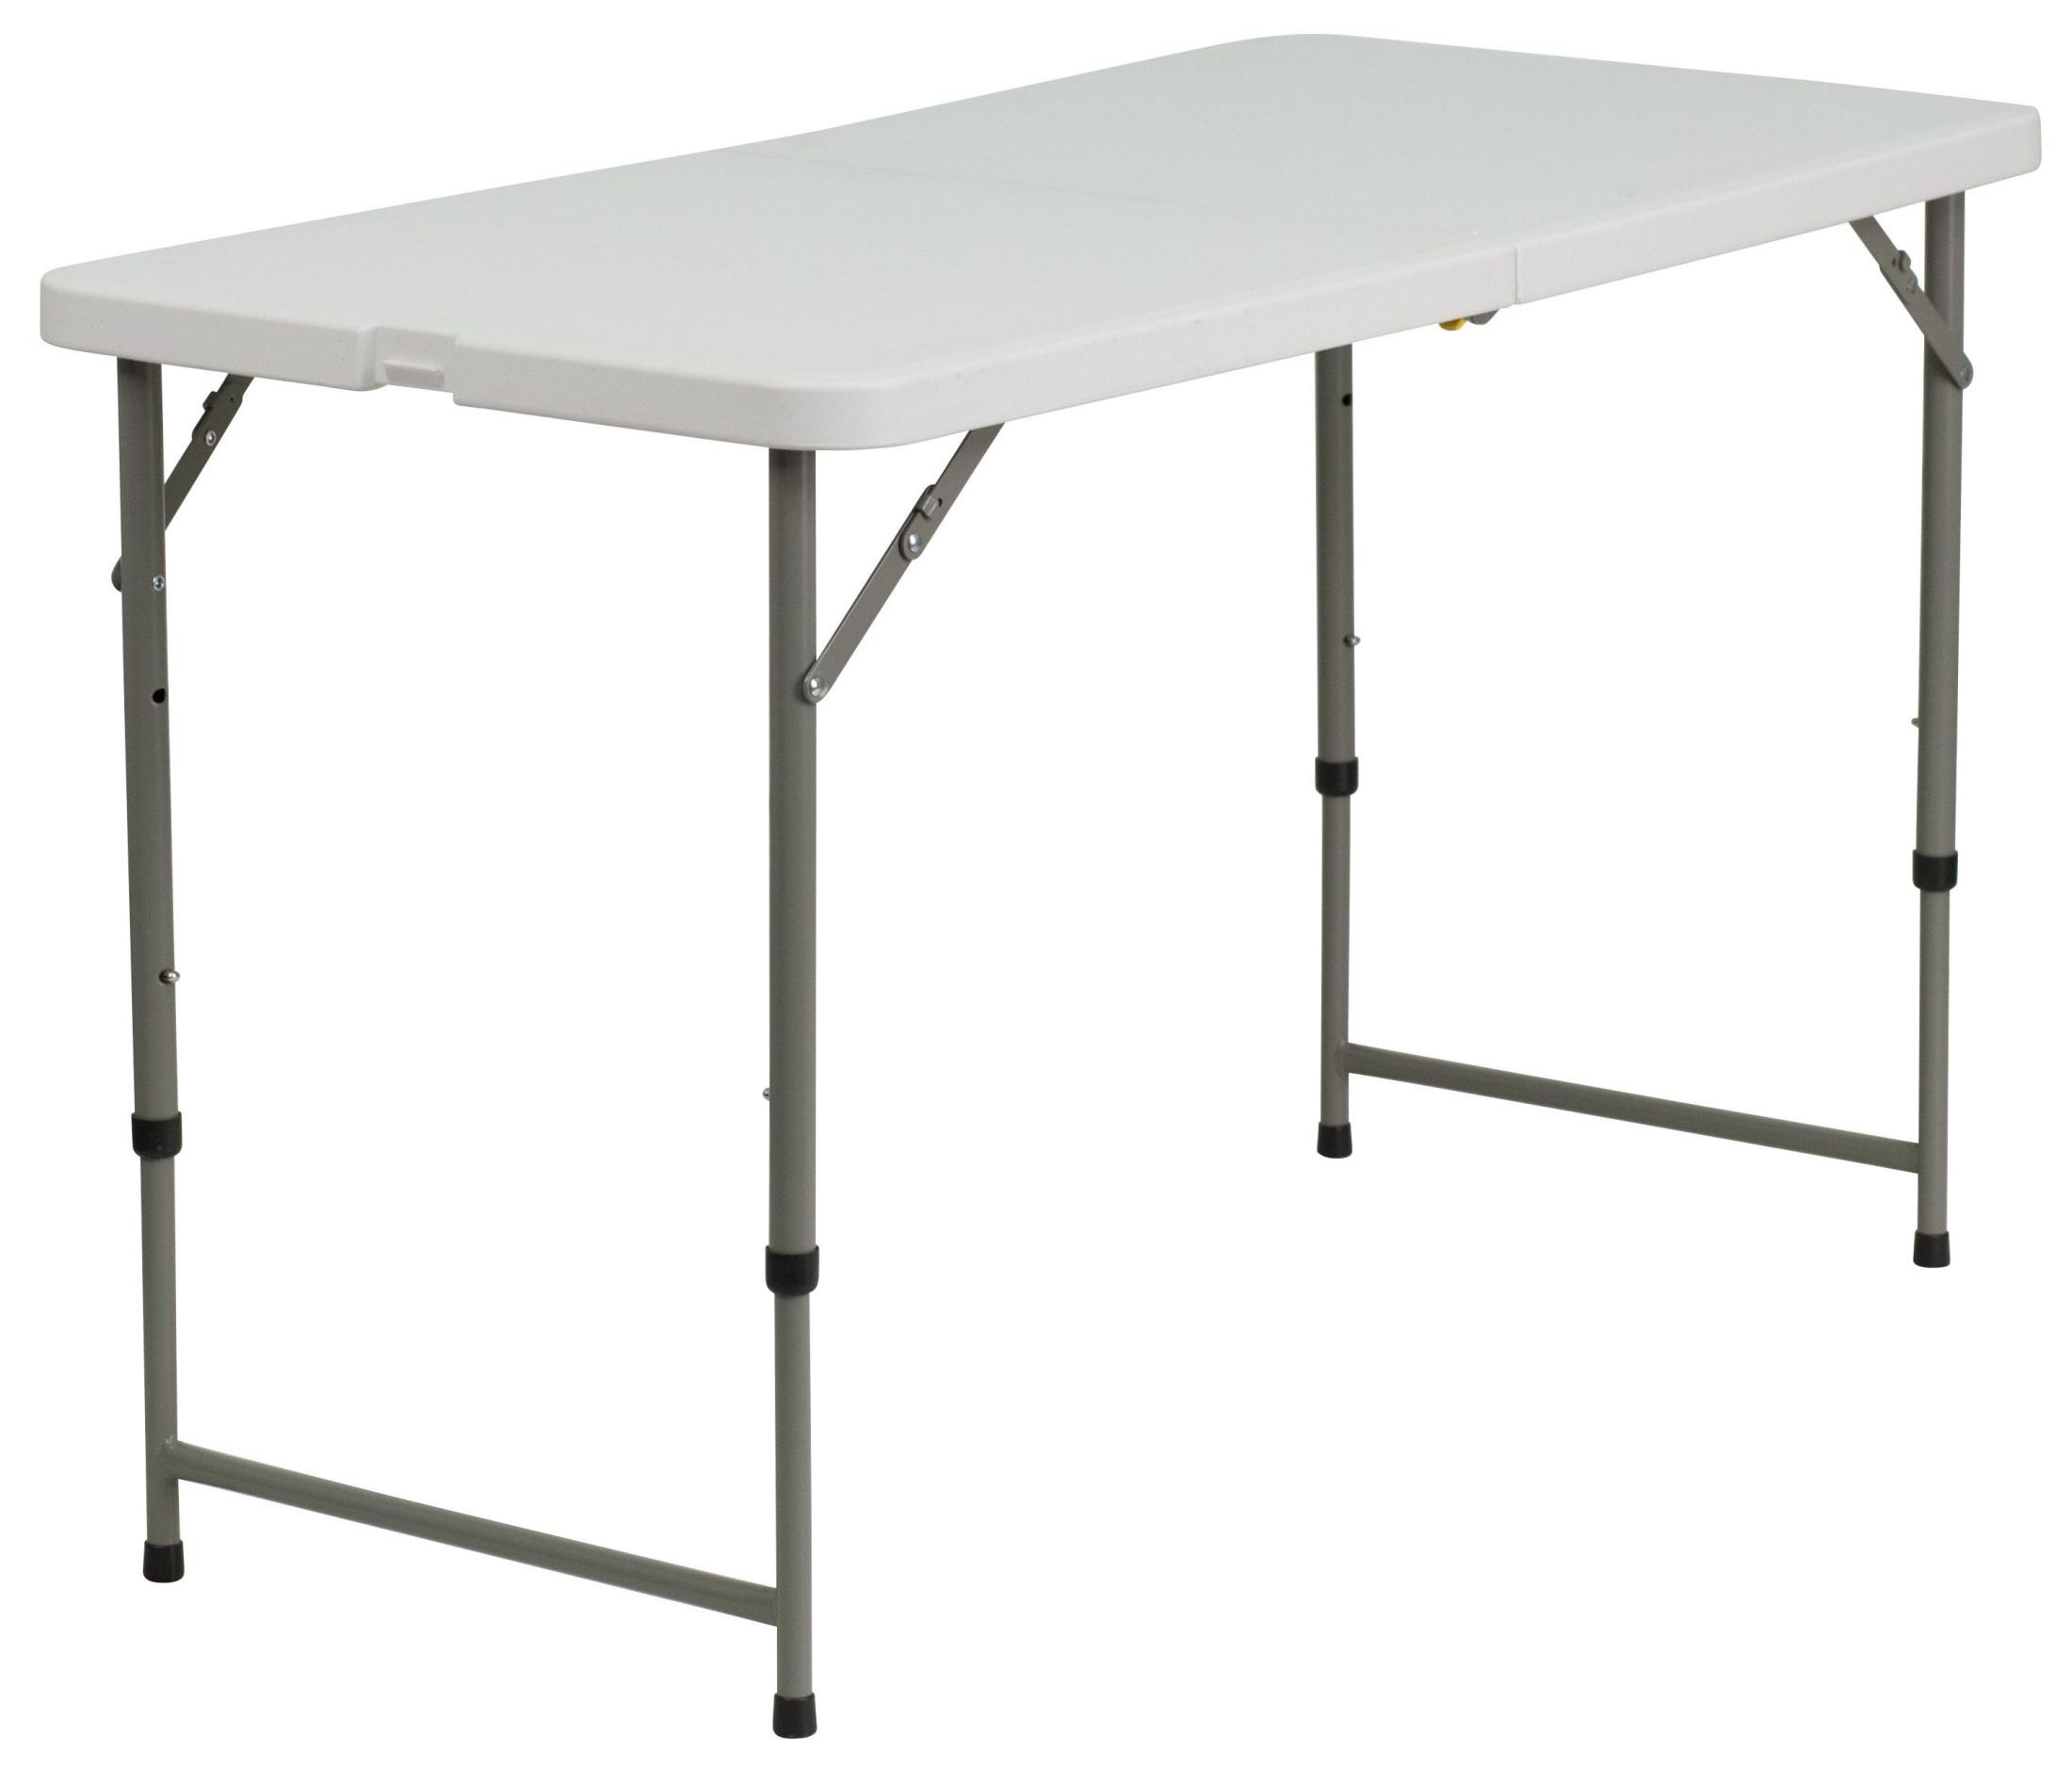 Adjustable Height Granite White Plastic Folding Table From